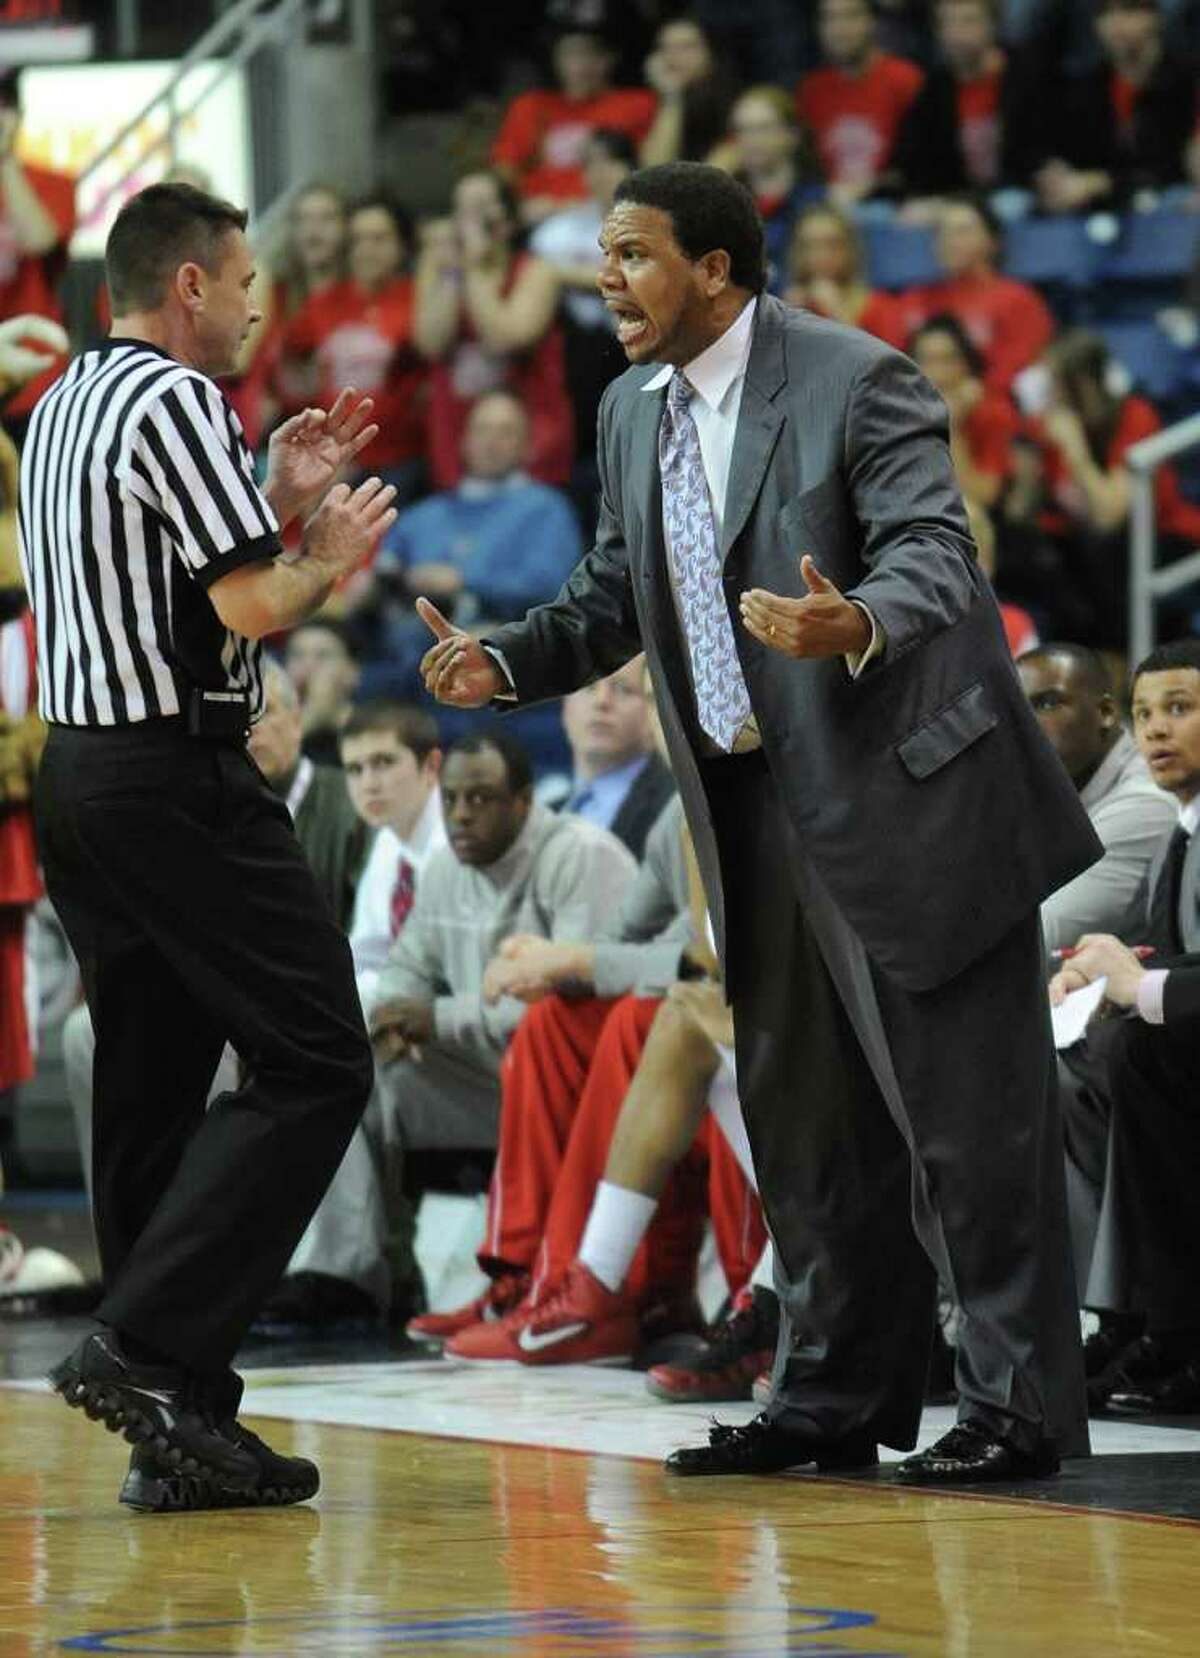 Fairfield head coach Ed Cooley confronts an official during the MAAC men's basketball semifinals at the Webster Bank Arena at Harbor Yard in Bridgeport on Sunday, March 6, 2011. The Fairfield bench received a technical foul.